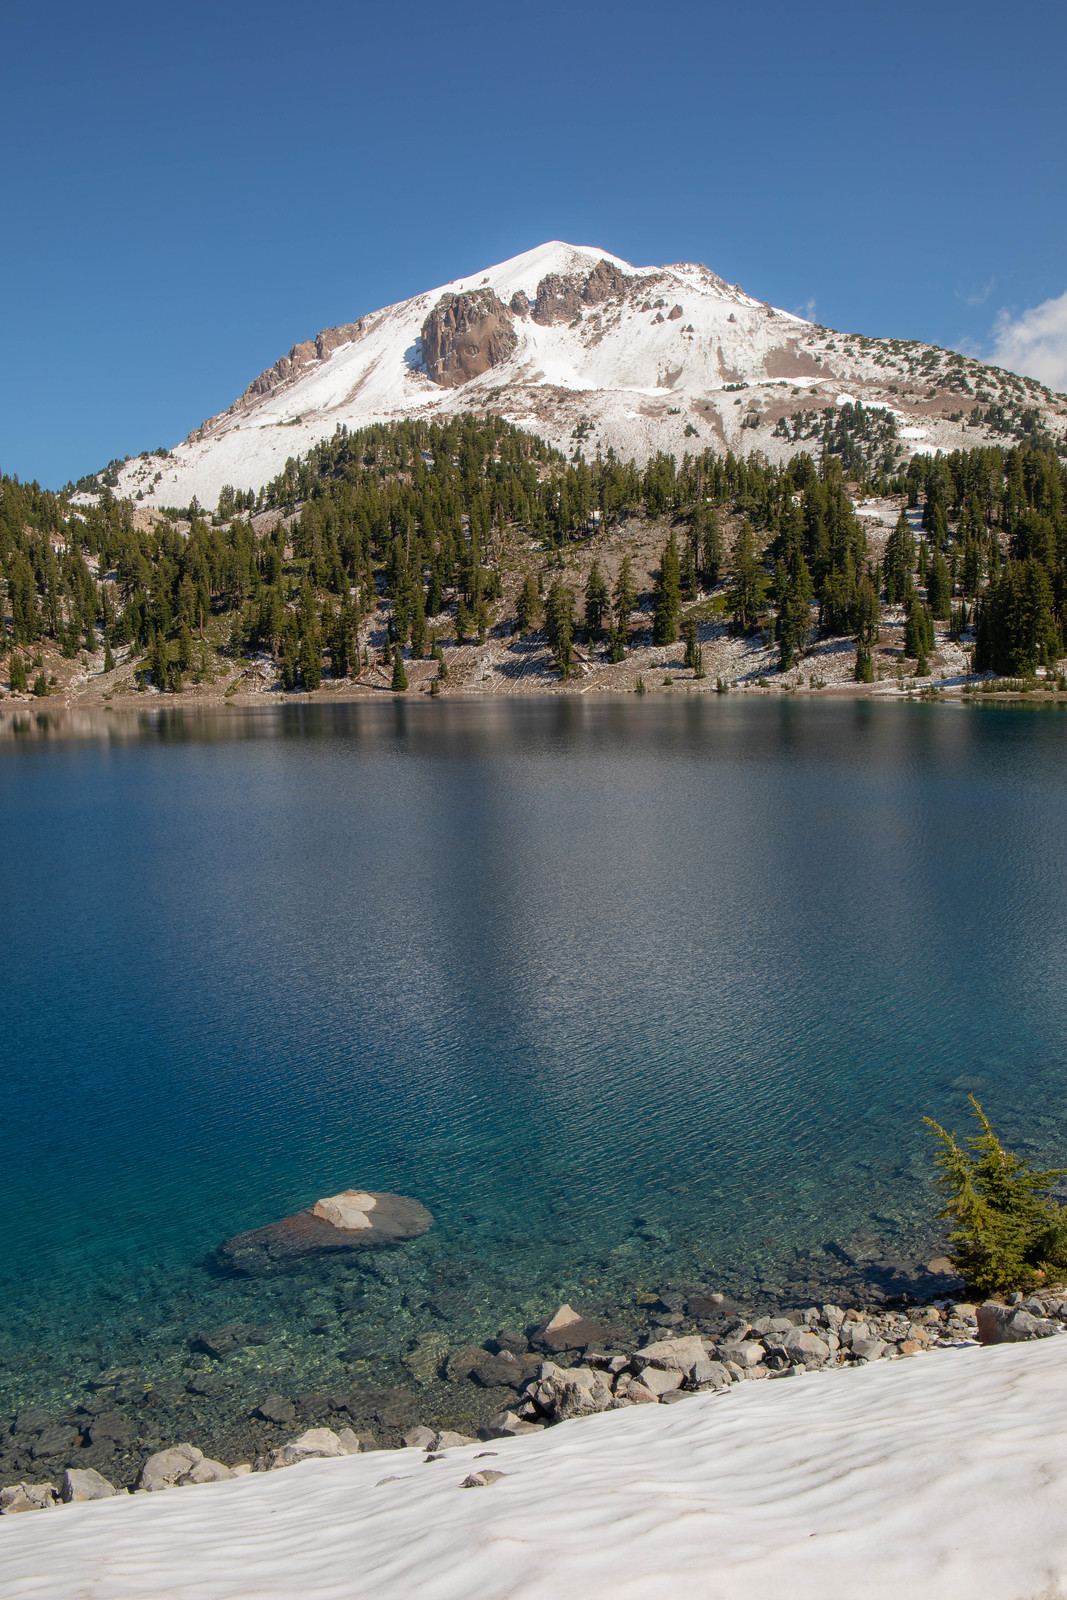 08.11. Lassen National Park